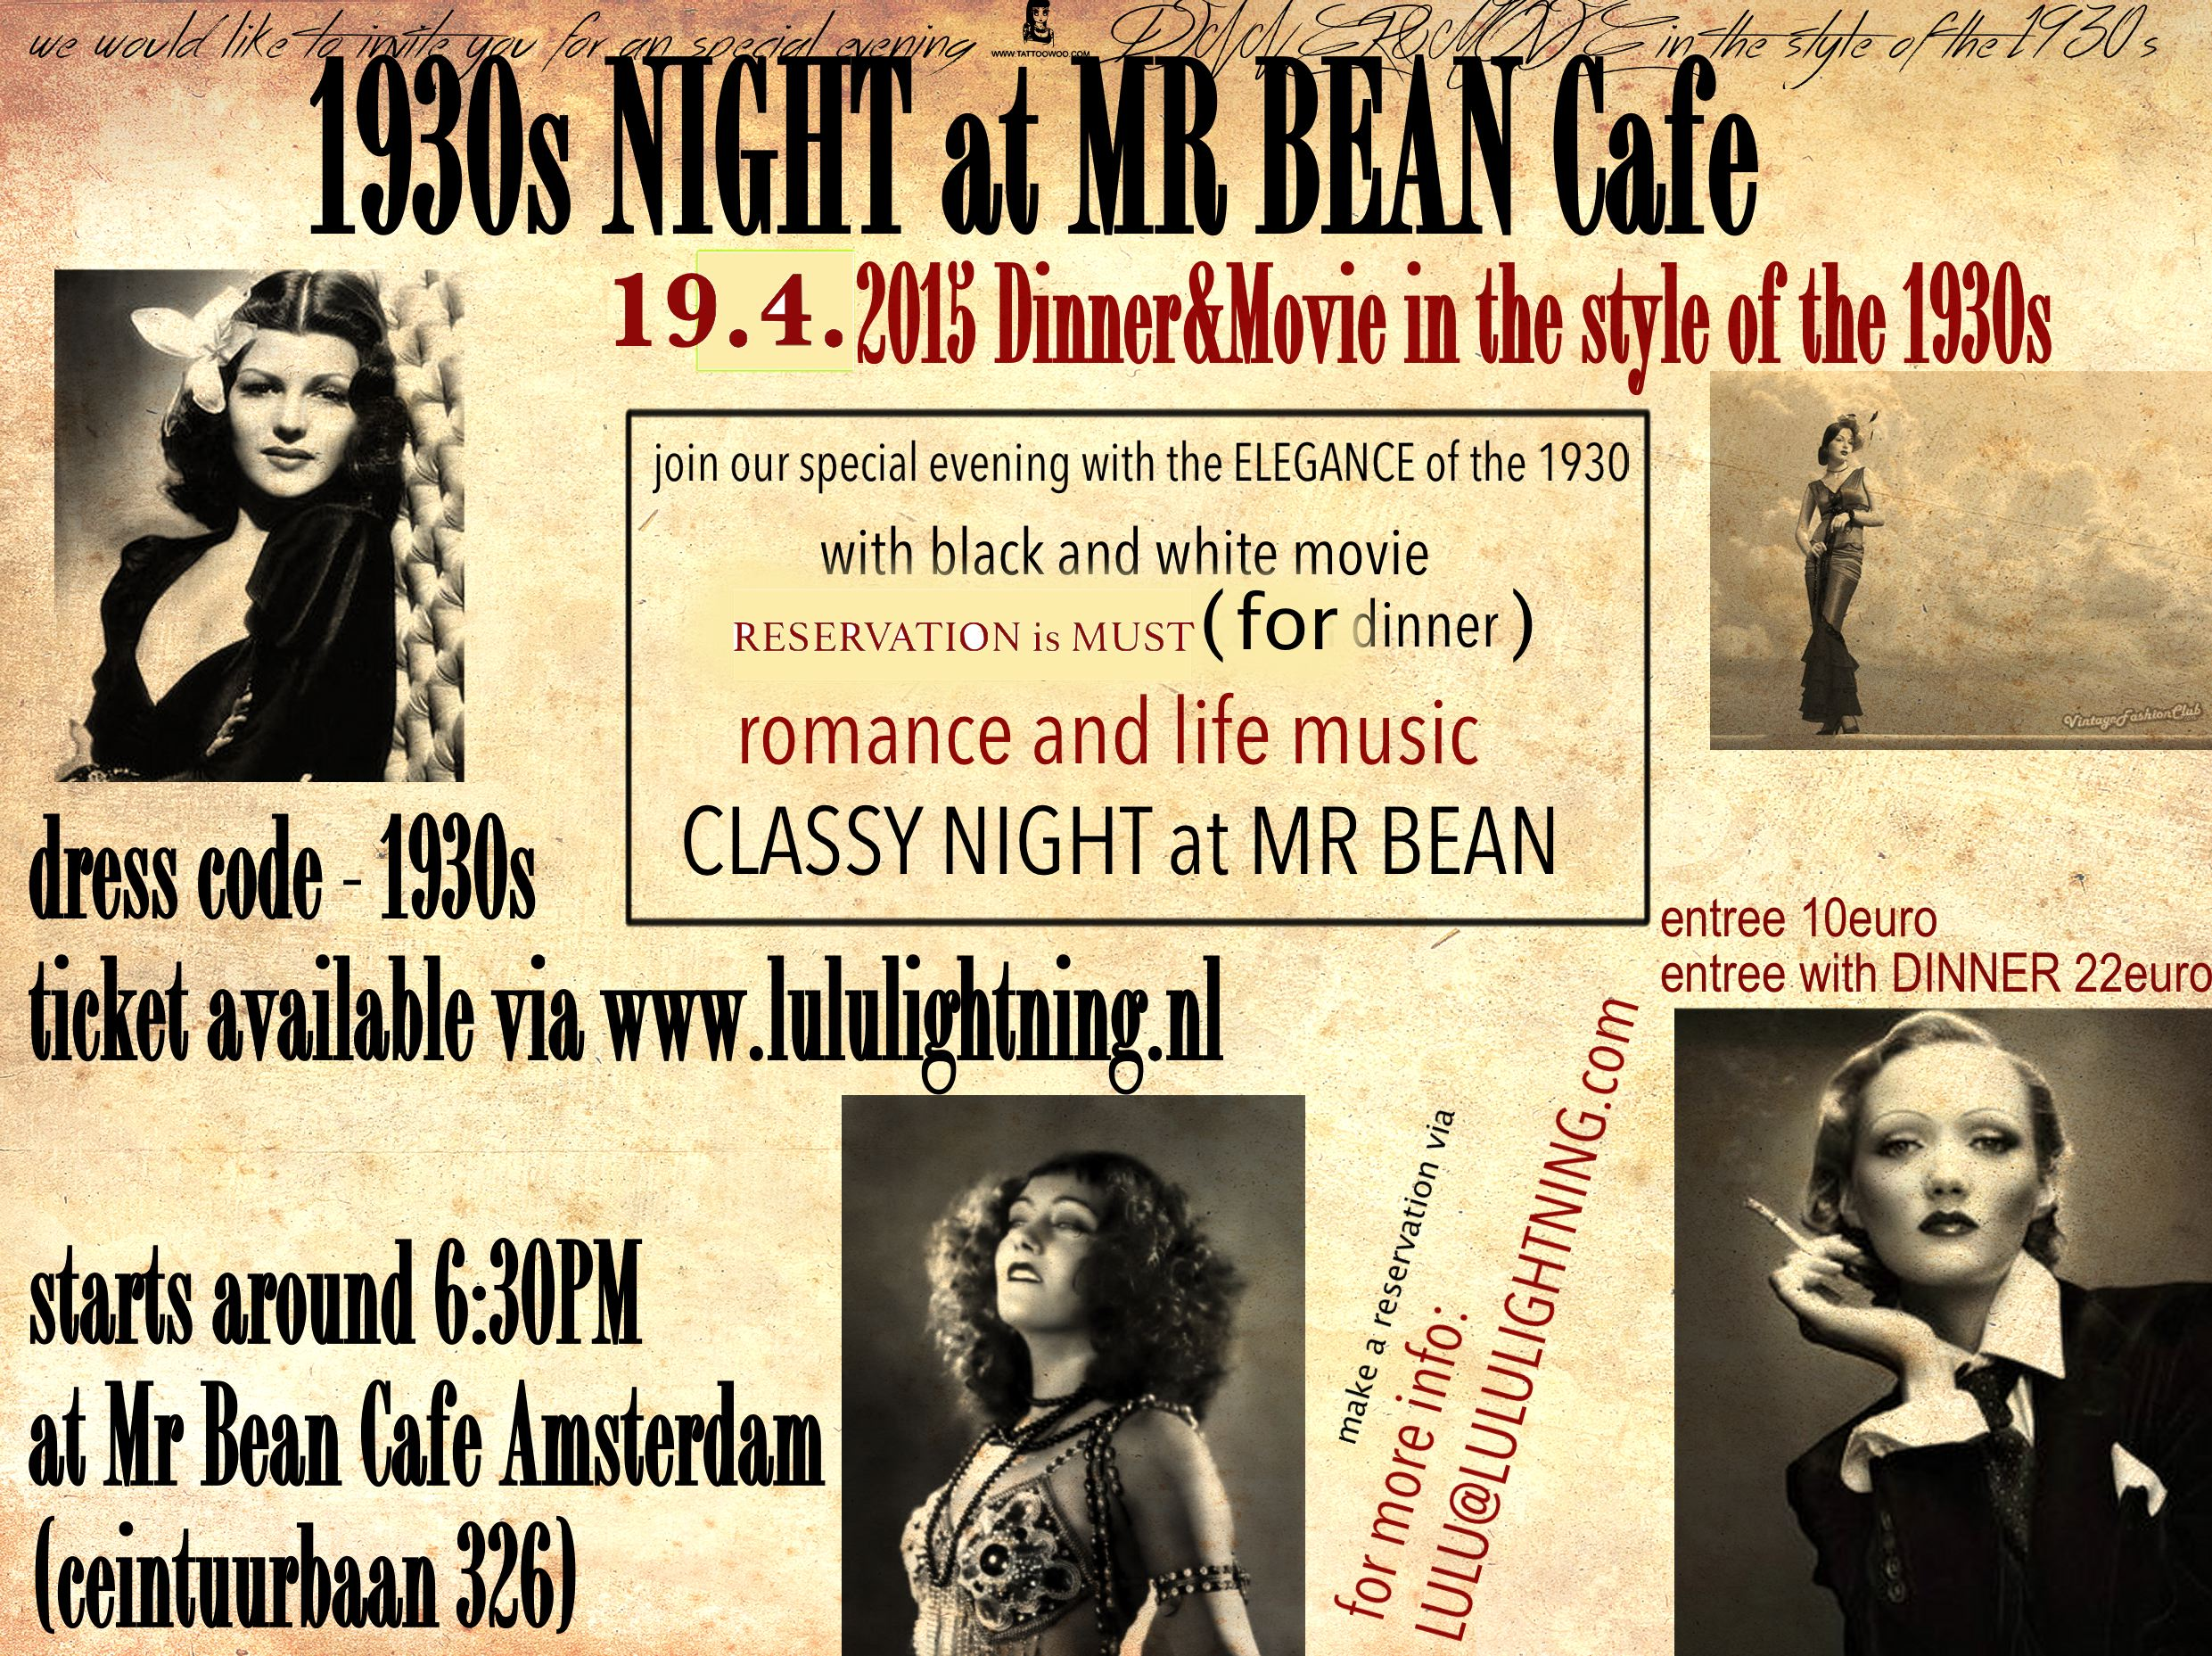 1930s DINNER MOVIE NIGHT at MR BEAN CAFE AMSTERDAM